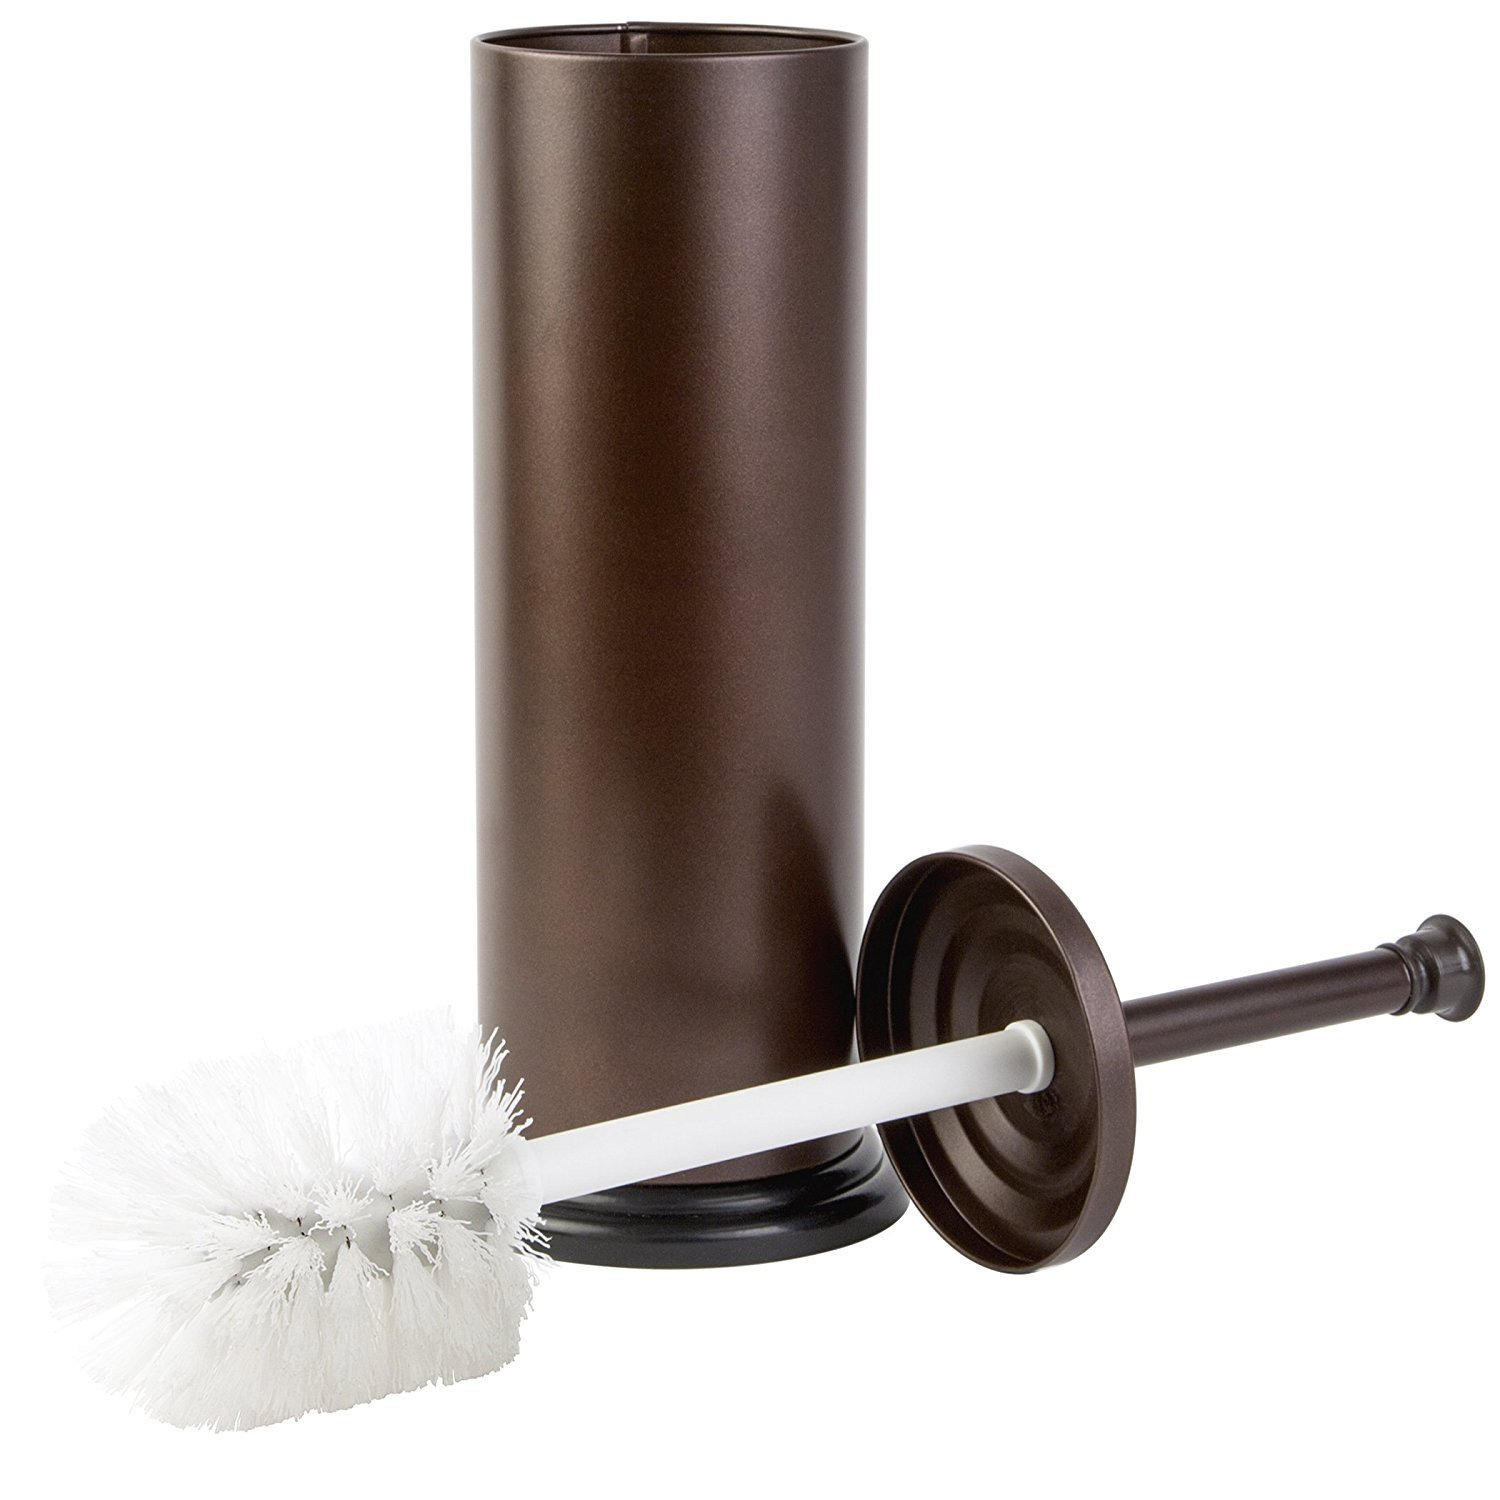 Richards Homewares Toilet Brush with Holder Bathroom Cleaning Brush with Matching Stand – Bronze RI-2004982